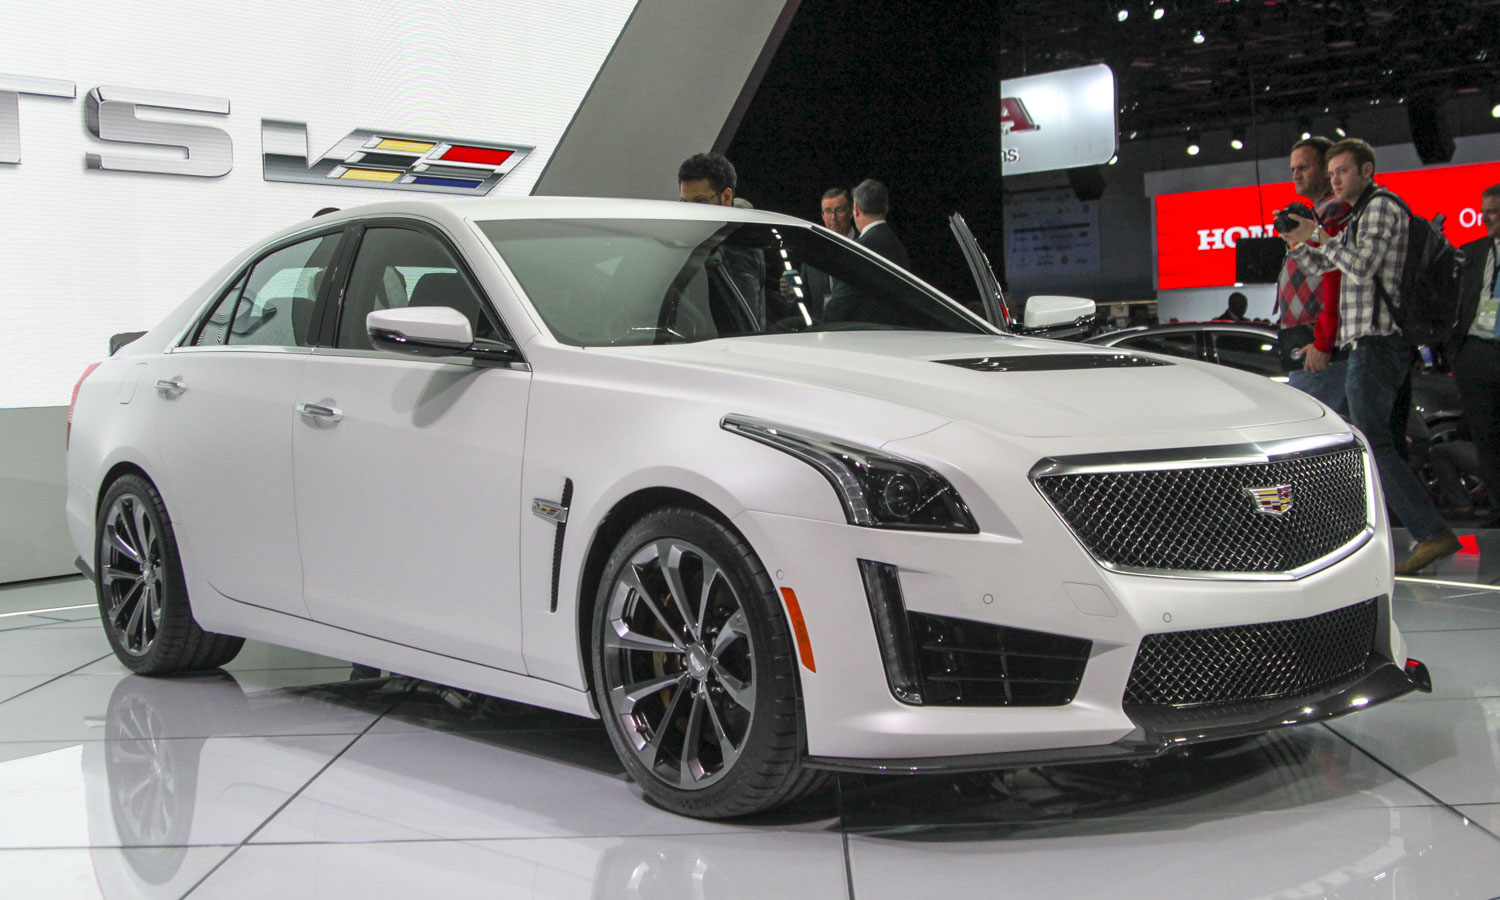 Cadillac CTS-V (c) Perry Stern